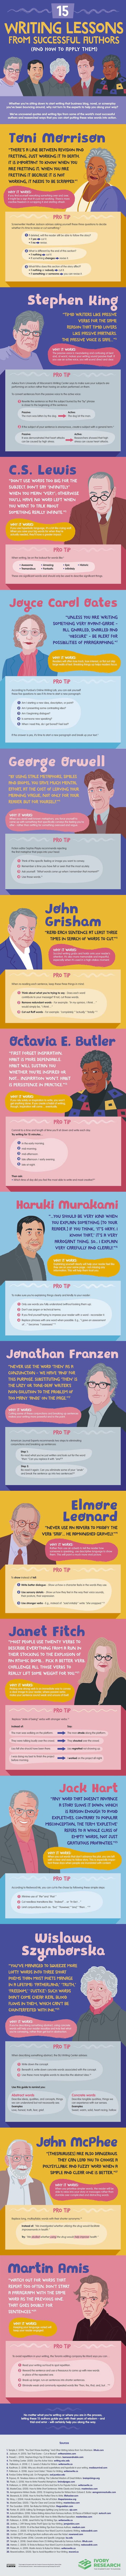 Writing lessons from successful authors infographic